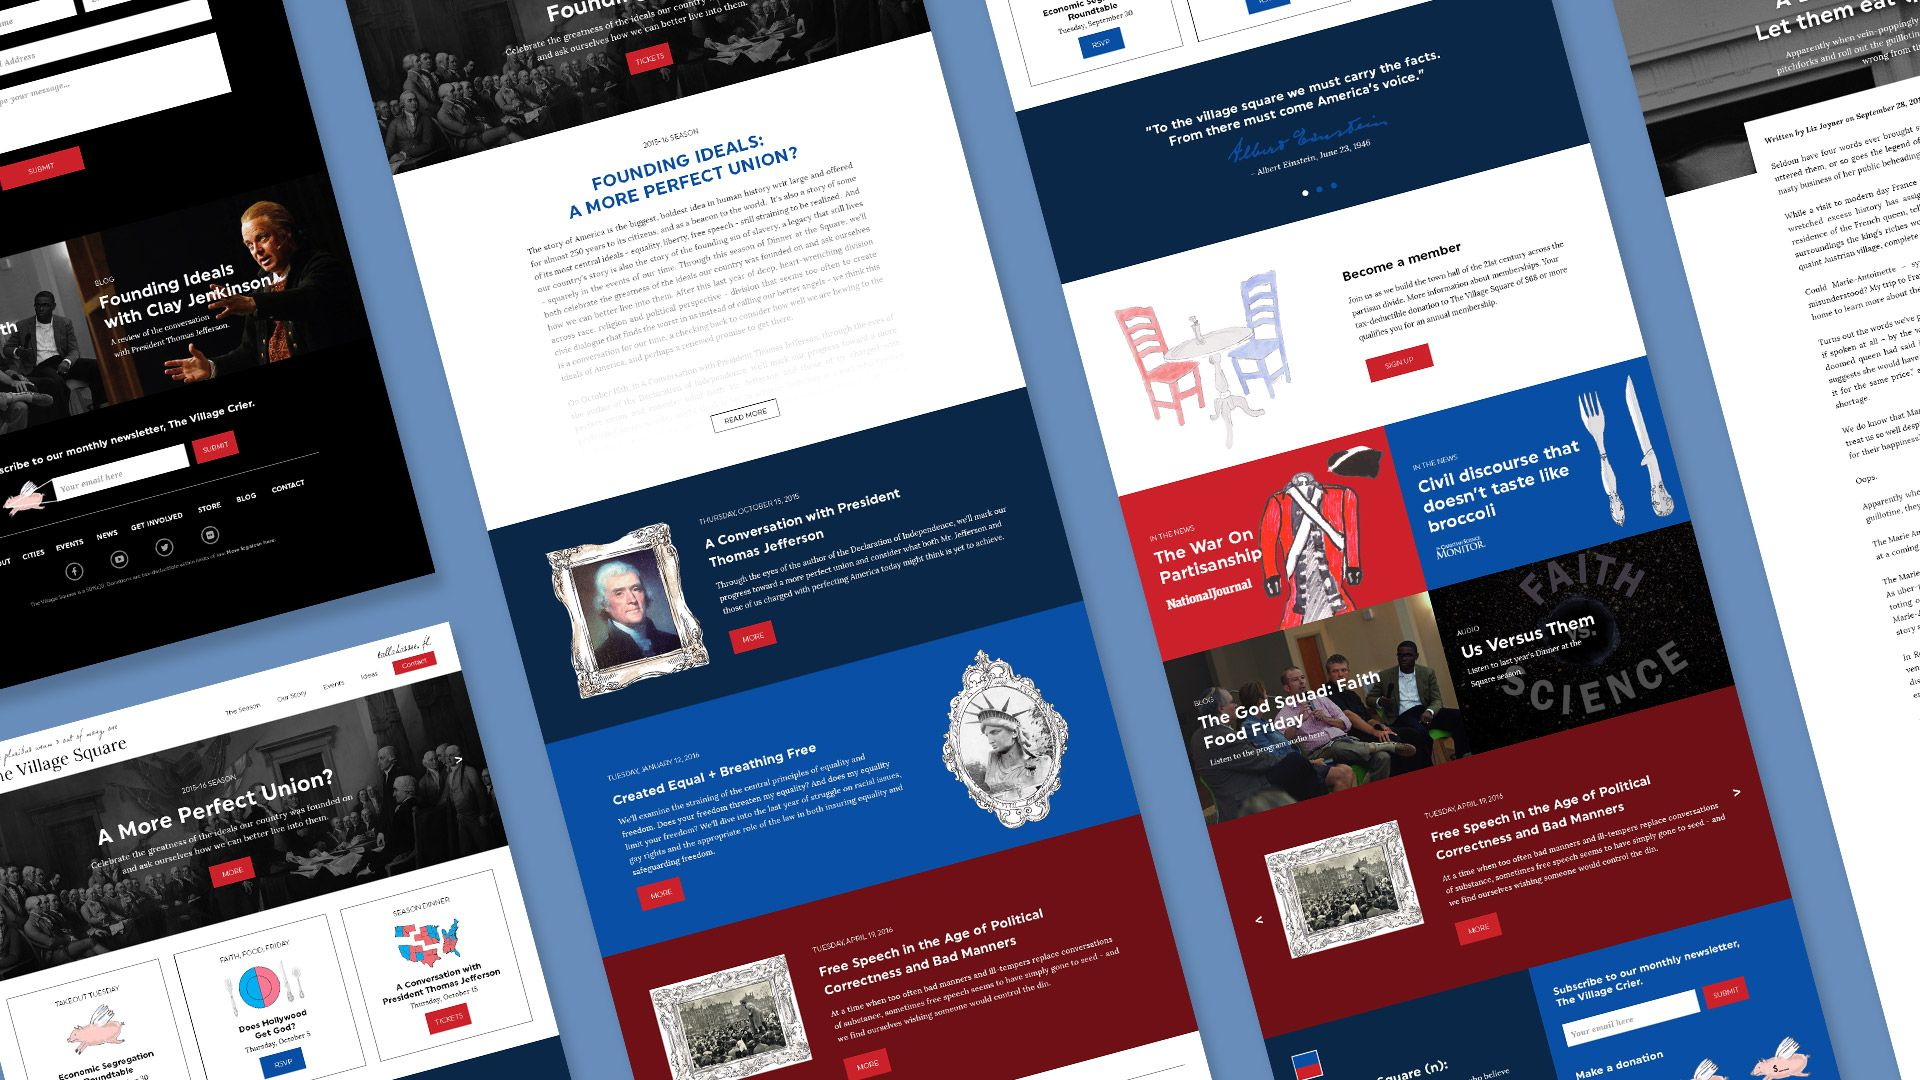 Village Square Web Design